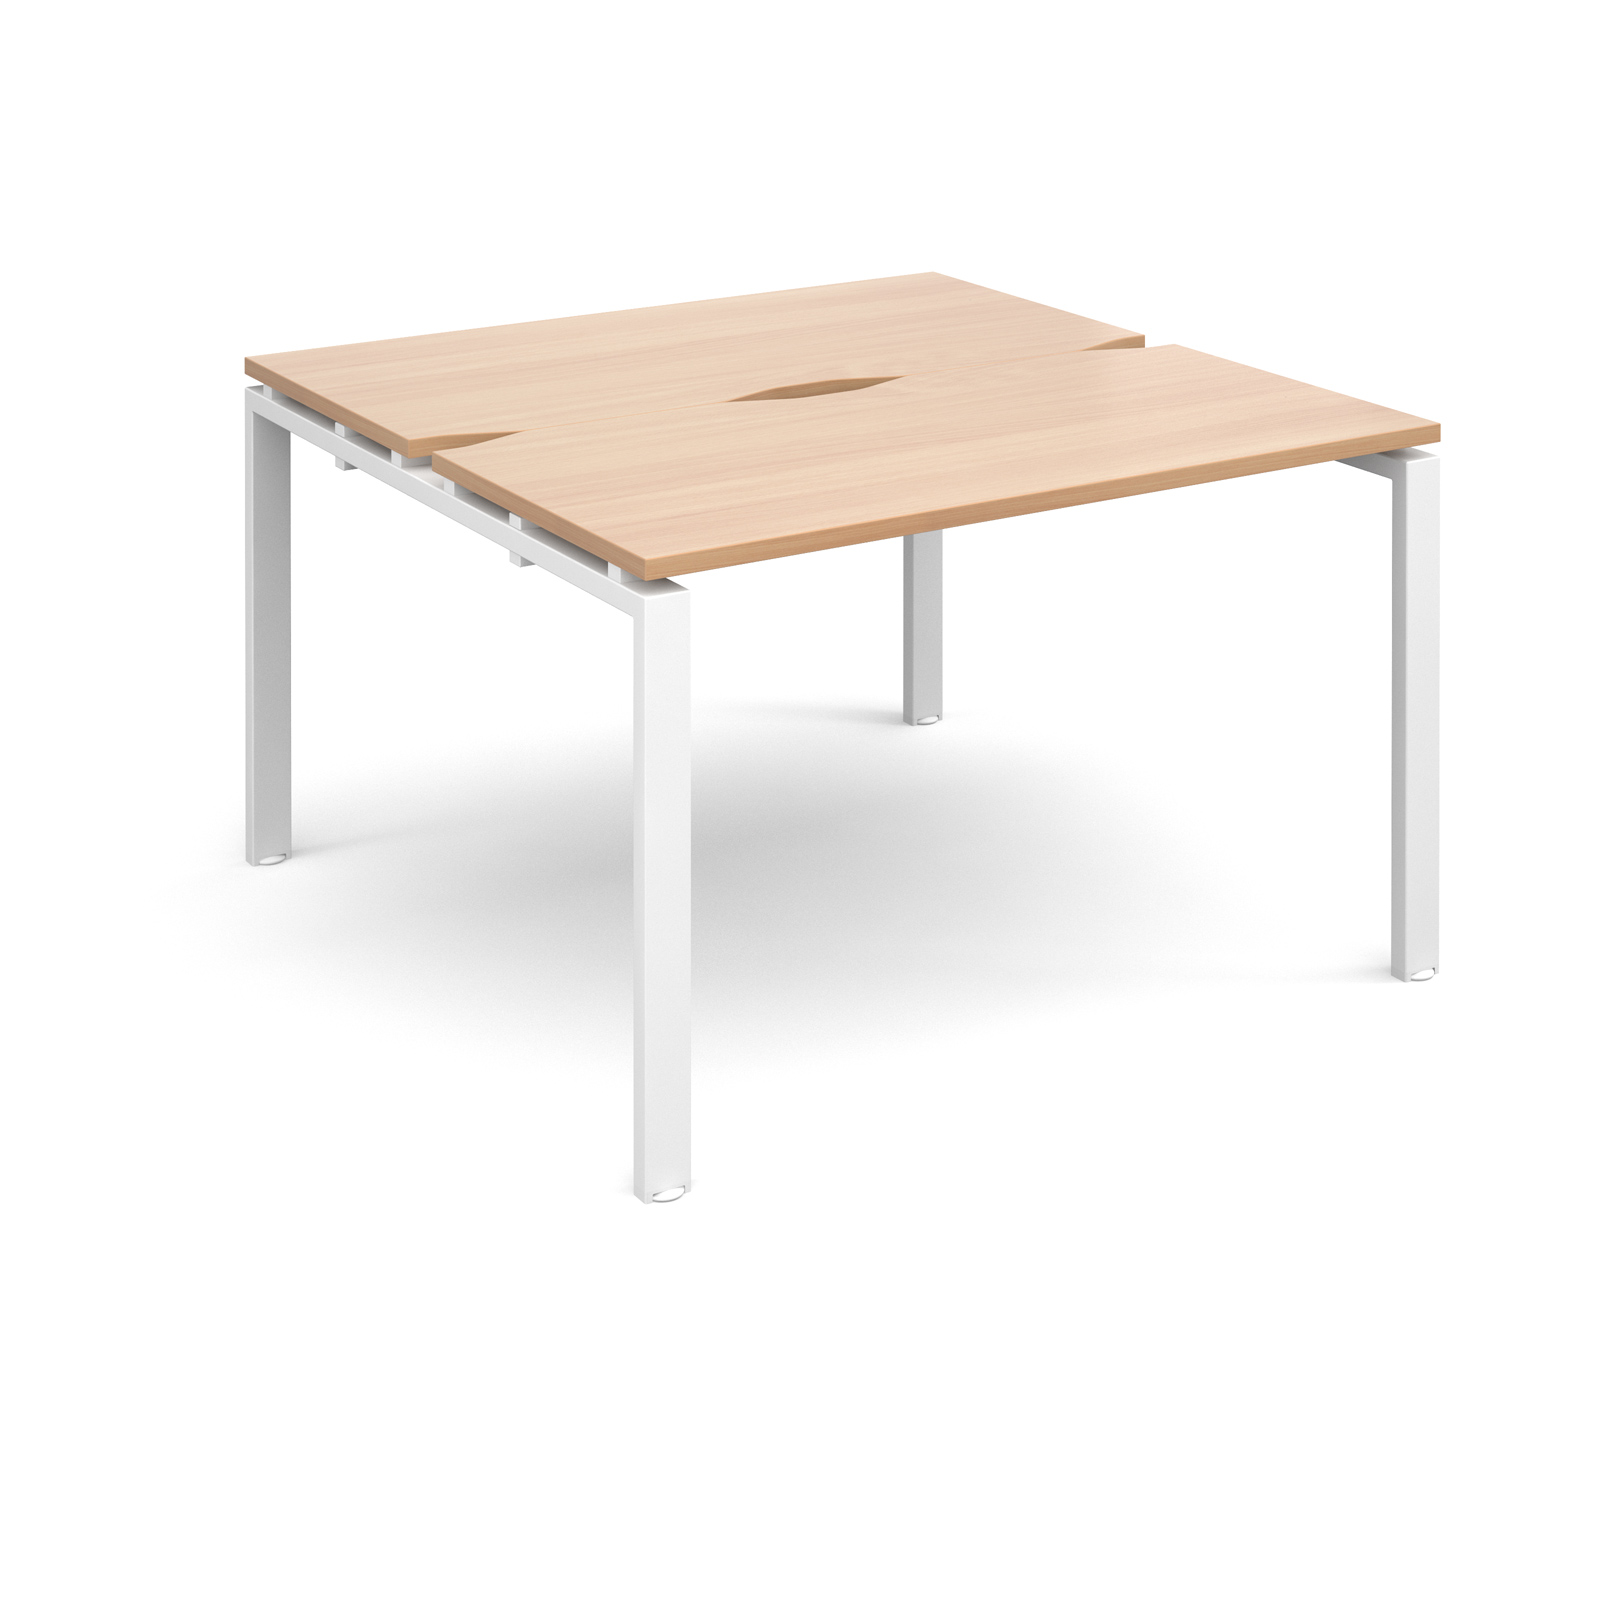 Adapt II 1200 x 1200 x 725mm Back to Back Desk - Beech / White Leg